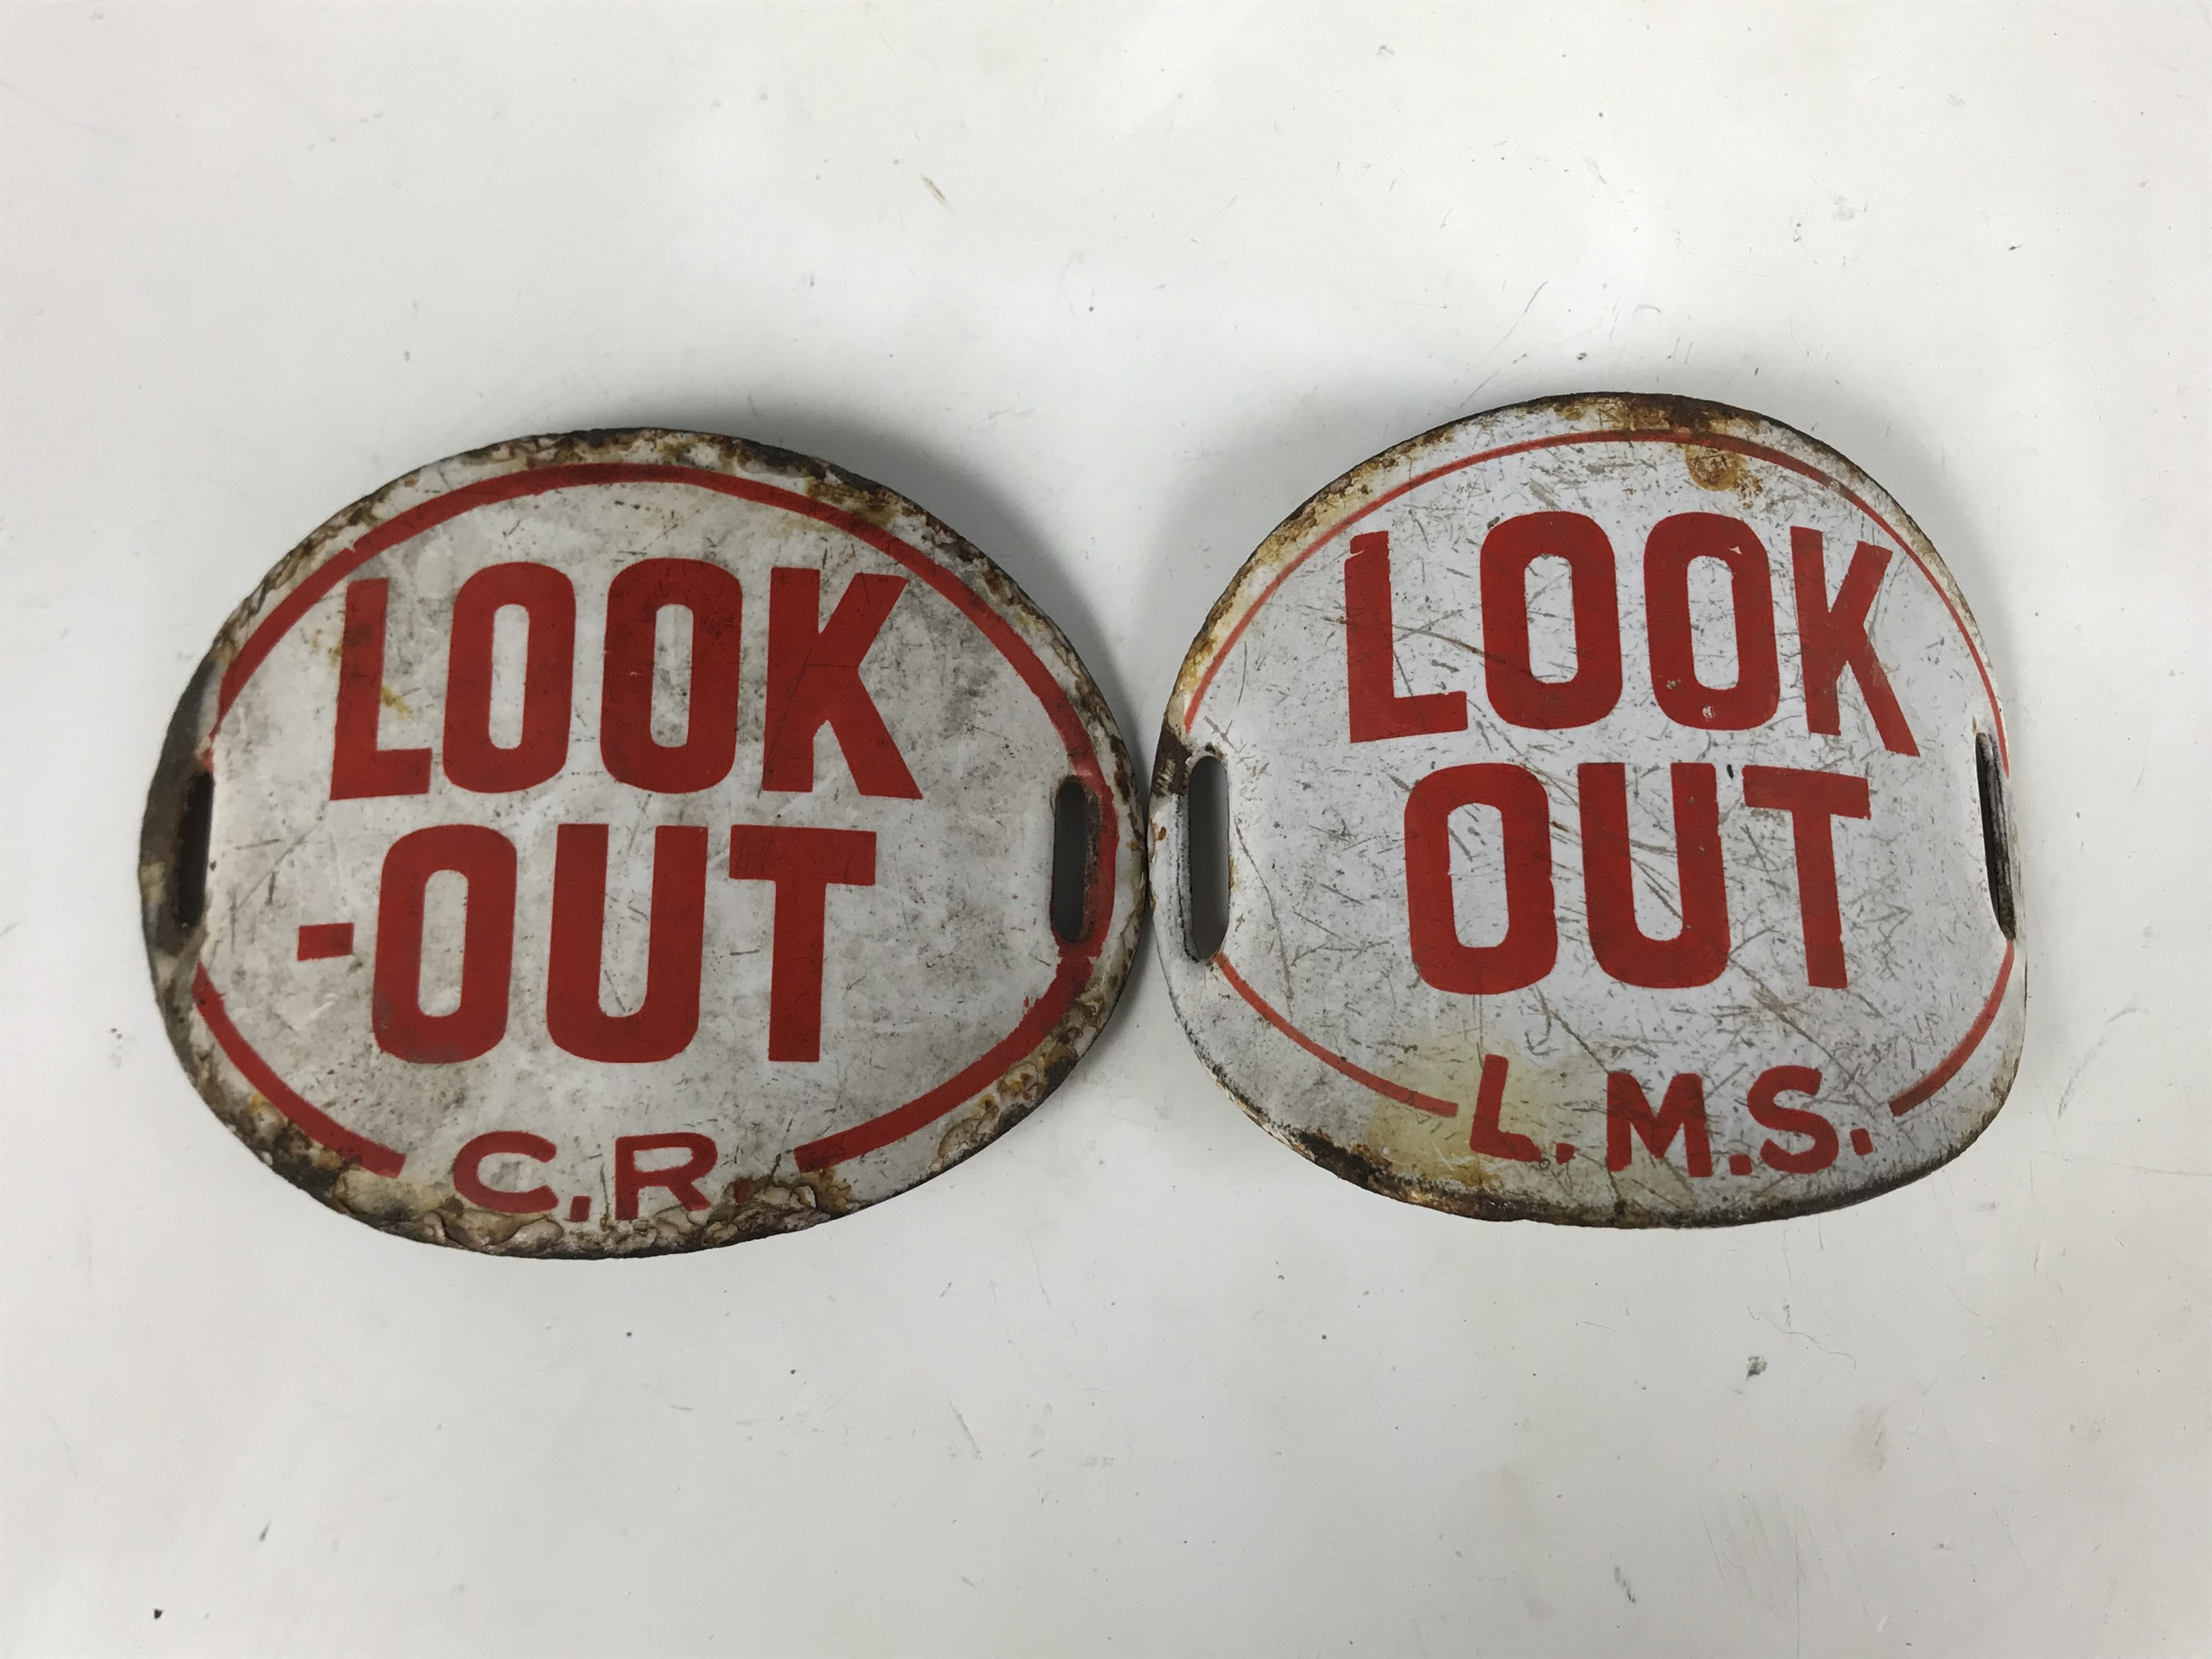 Lot 42 - Two railway 'Look-out' arm bands, LMS and CR